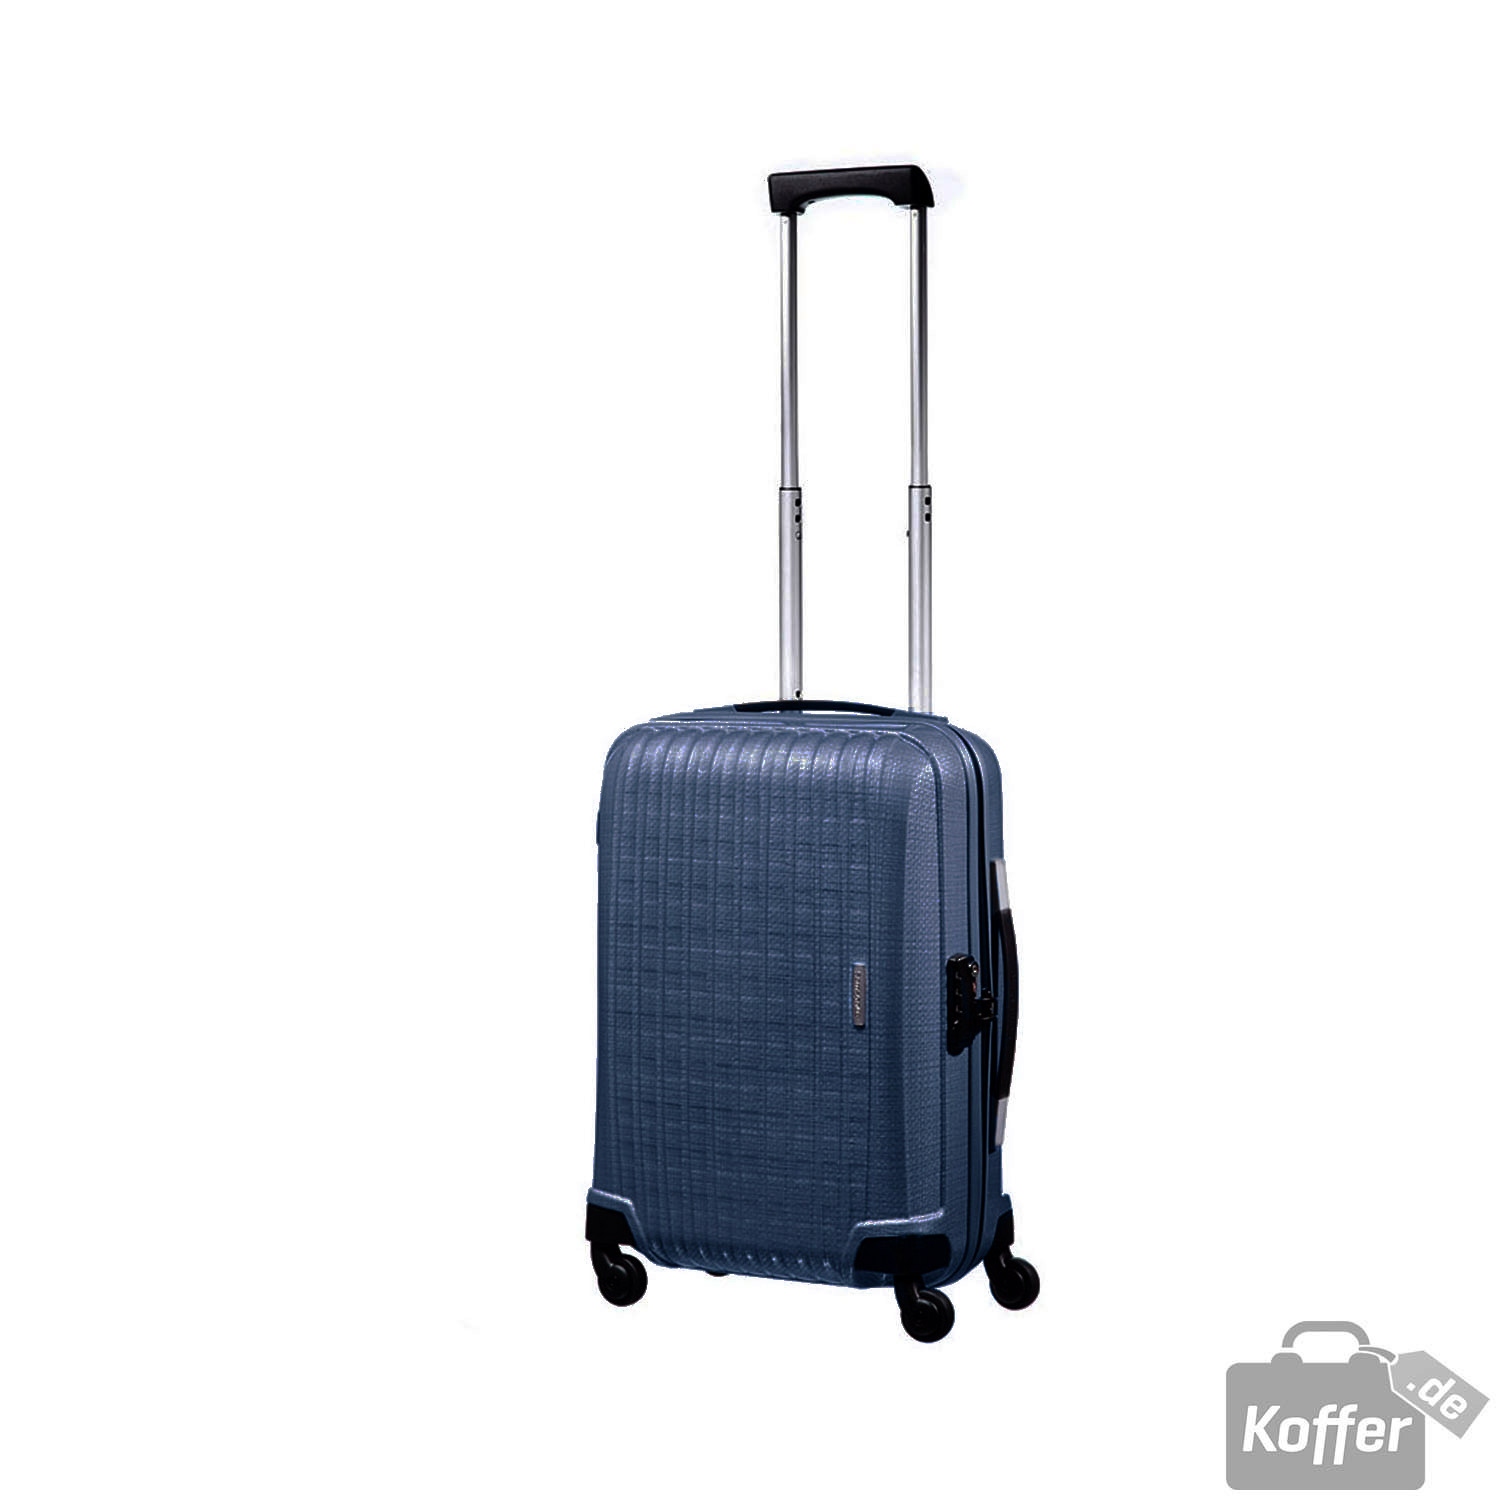 samsonite chronolite spinner 55cm cabin dark blue jetzt auf kaufen. Black Bedroom Furniture Sets. Home Design Ideas